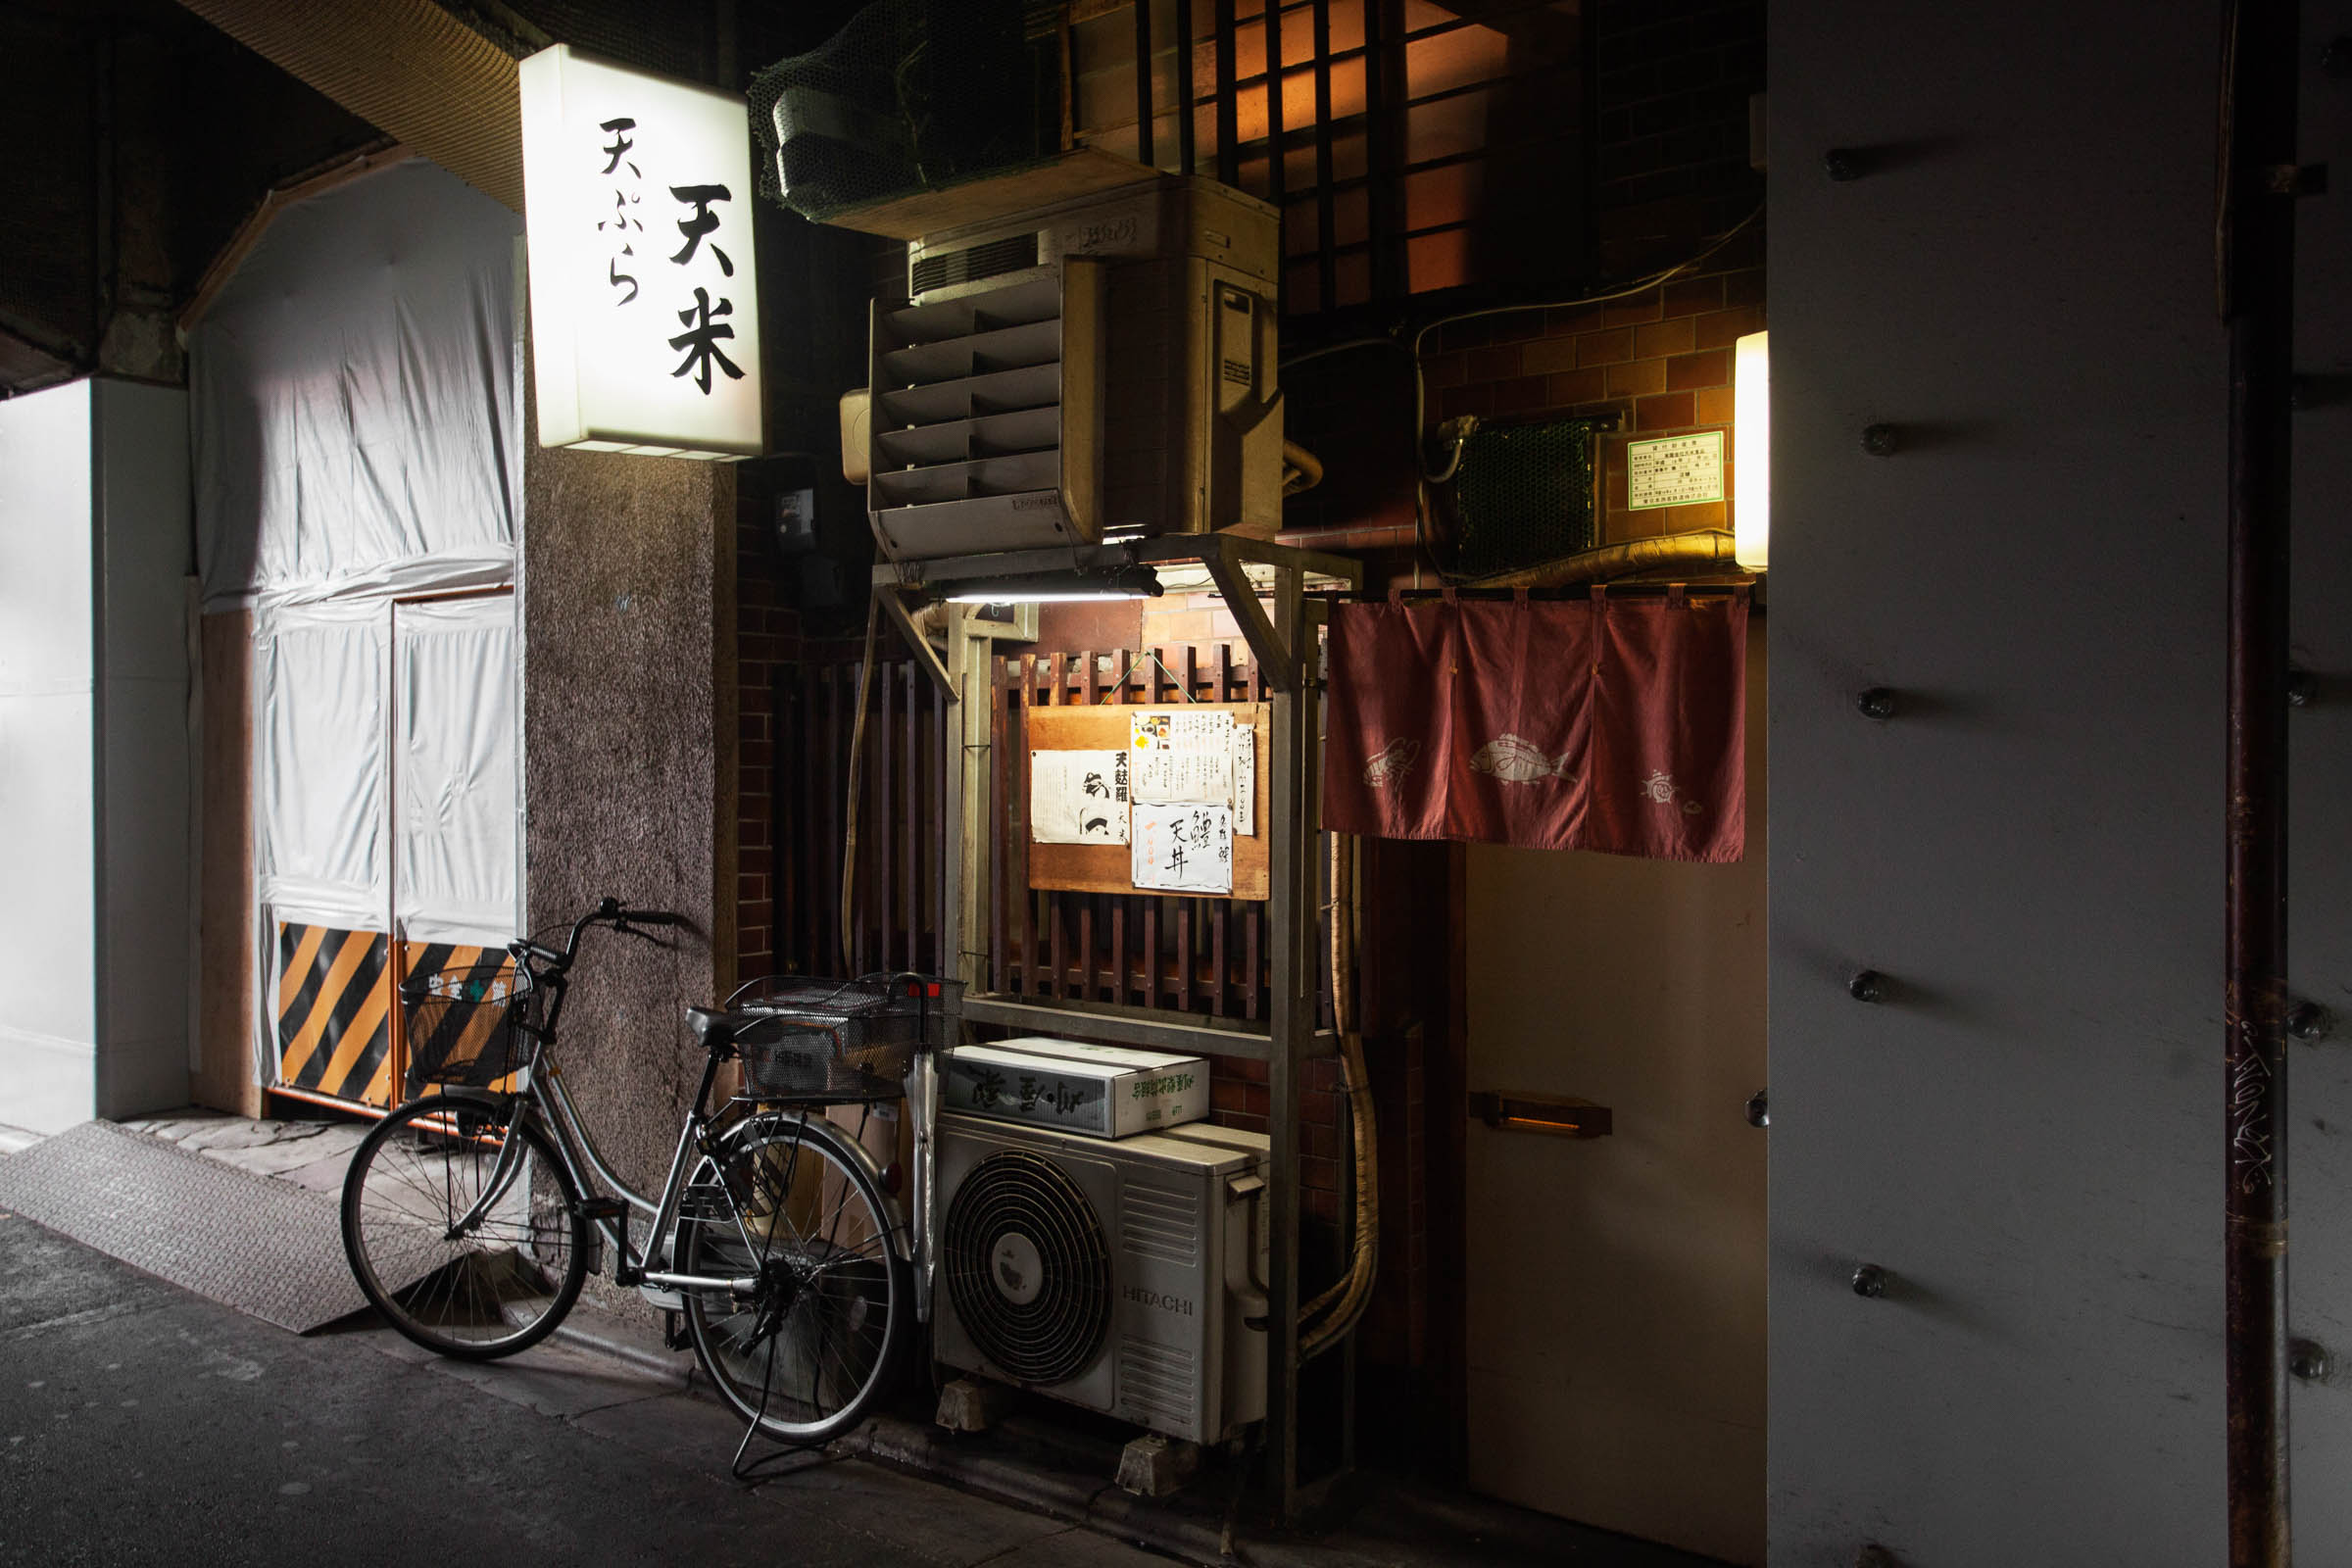 Chacon Images_Japan_Web-34.jpg